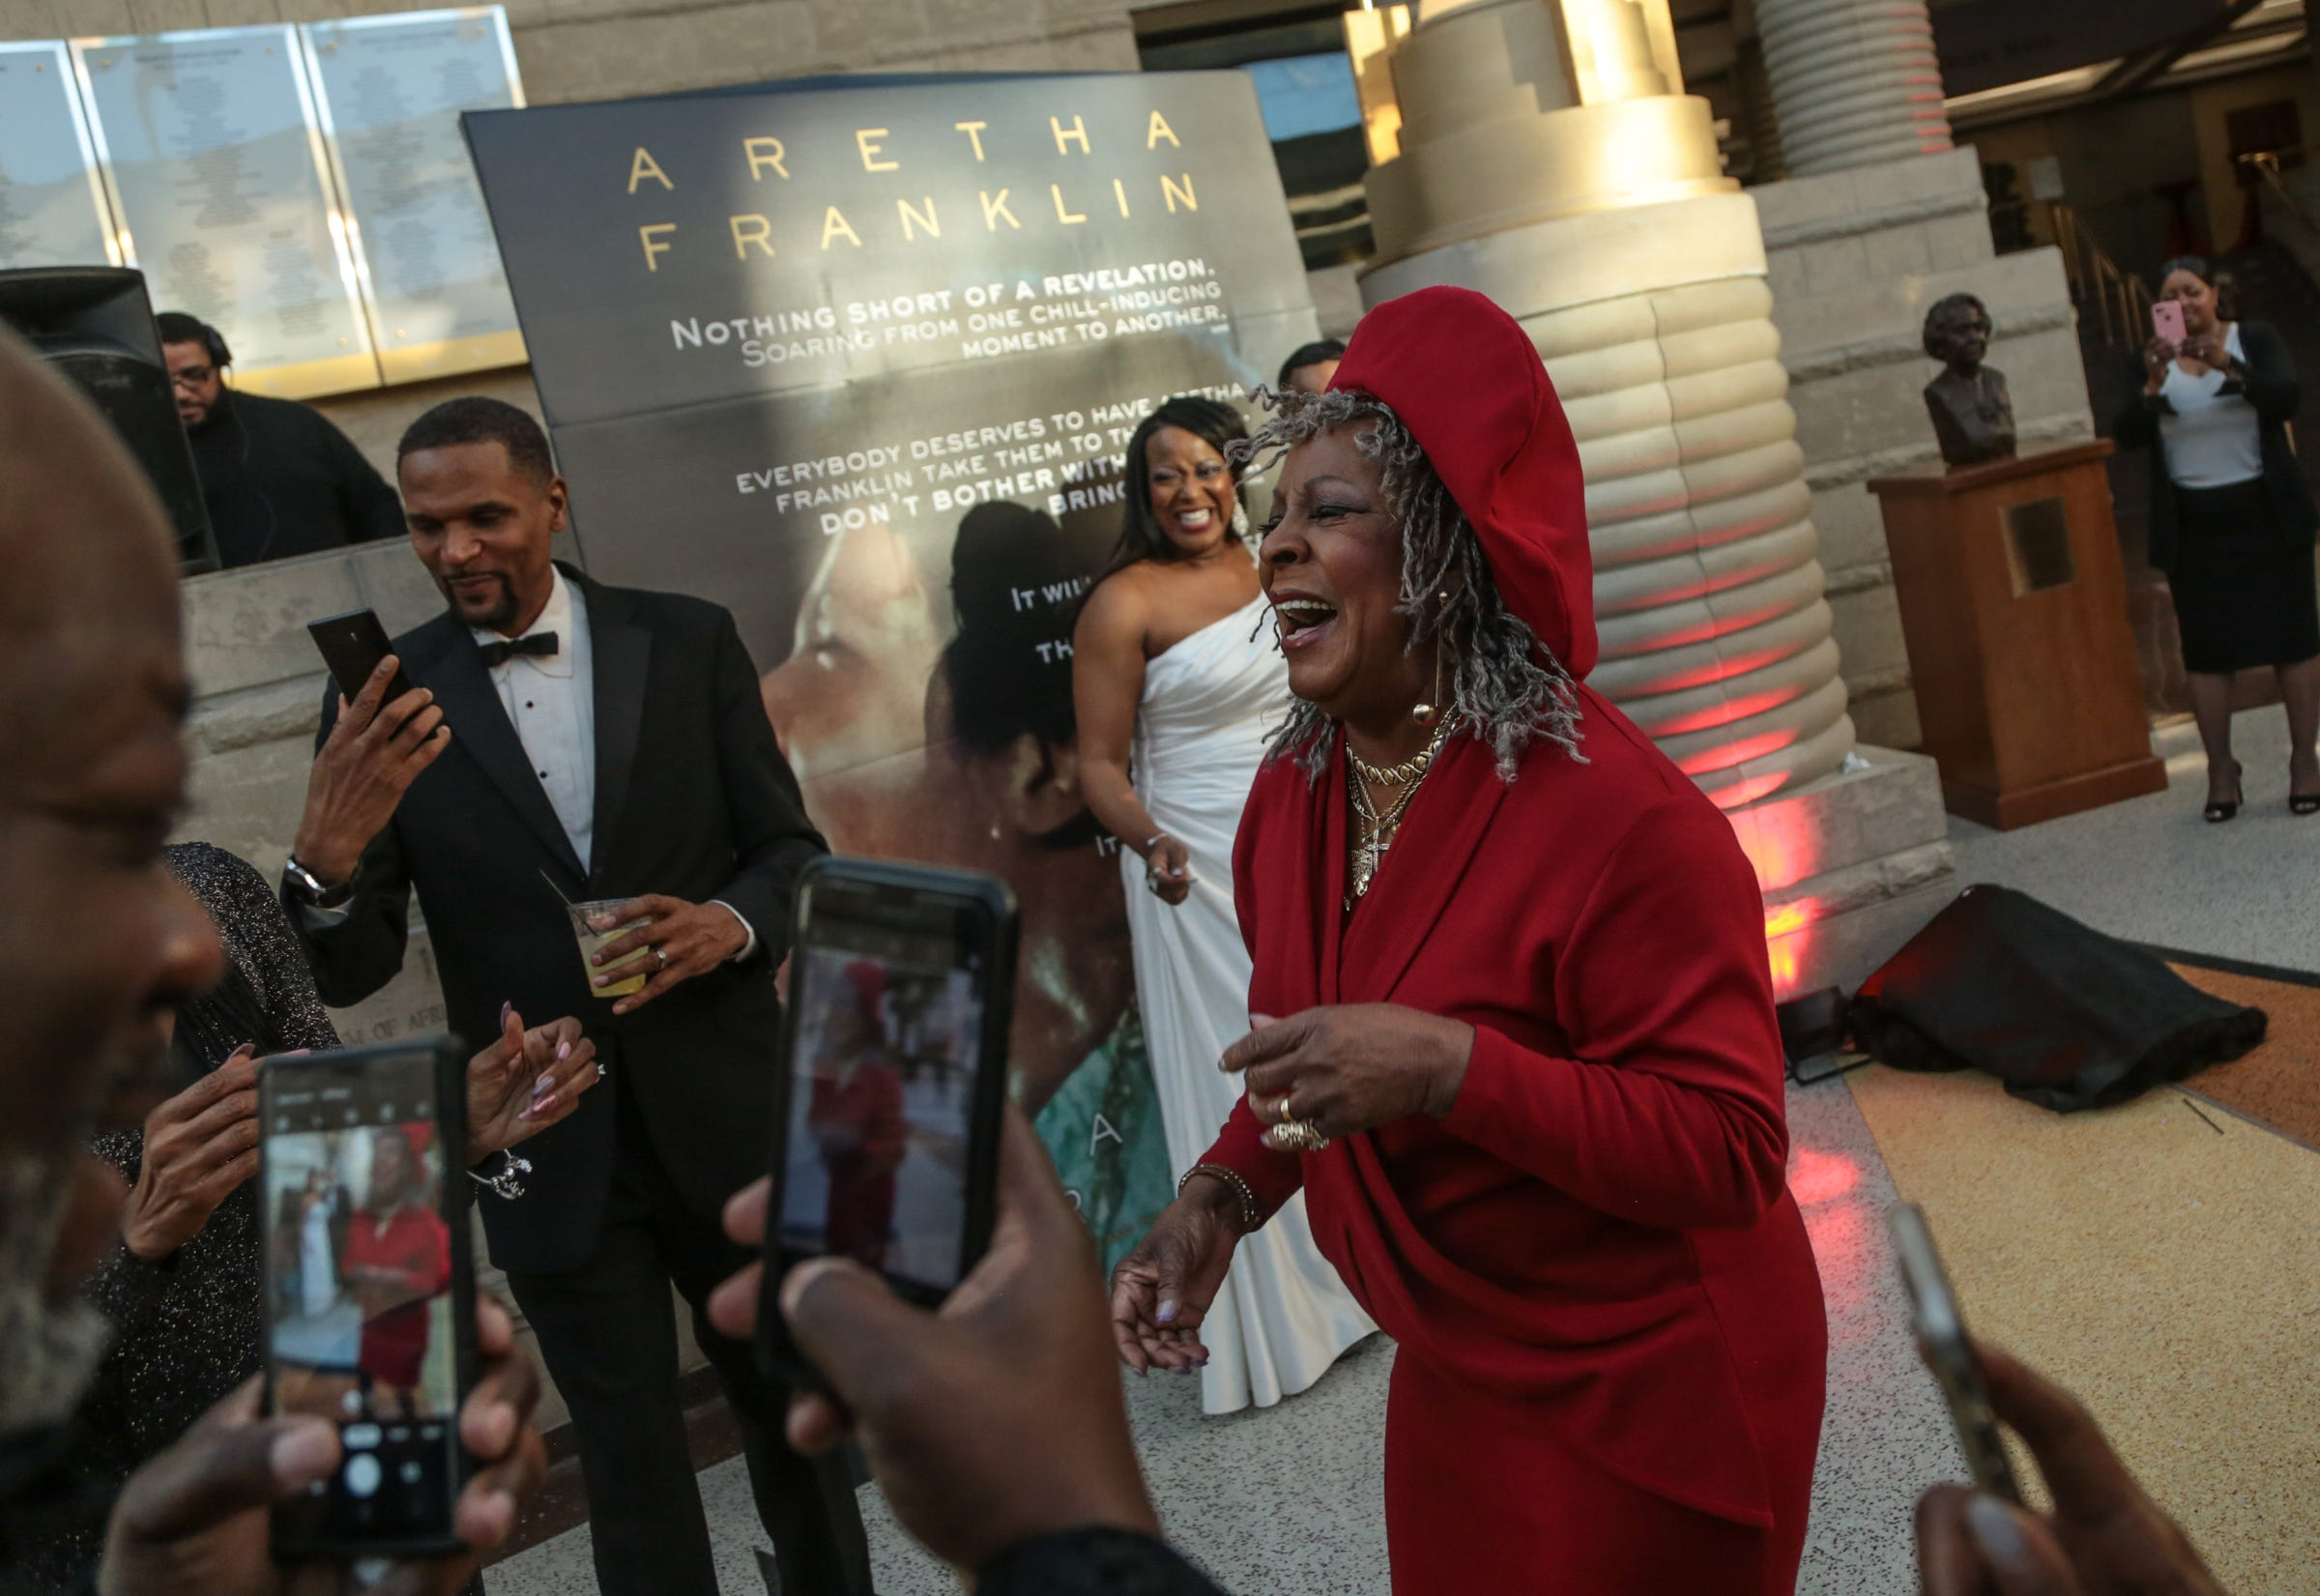 Aretha Franklin's 'Amazing Grace' film: Detroit premiere is 'back to ground zero'